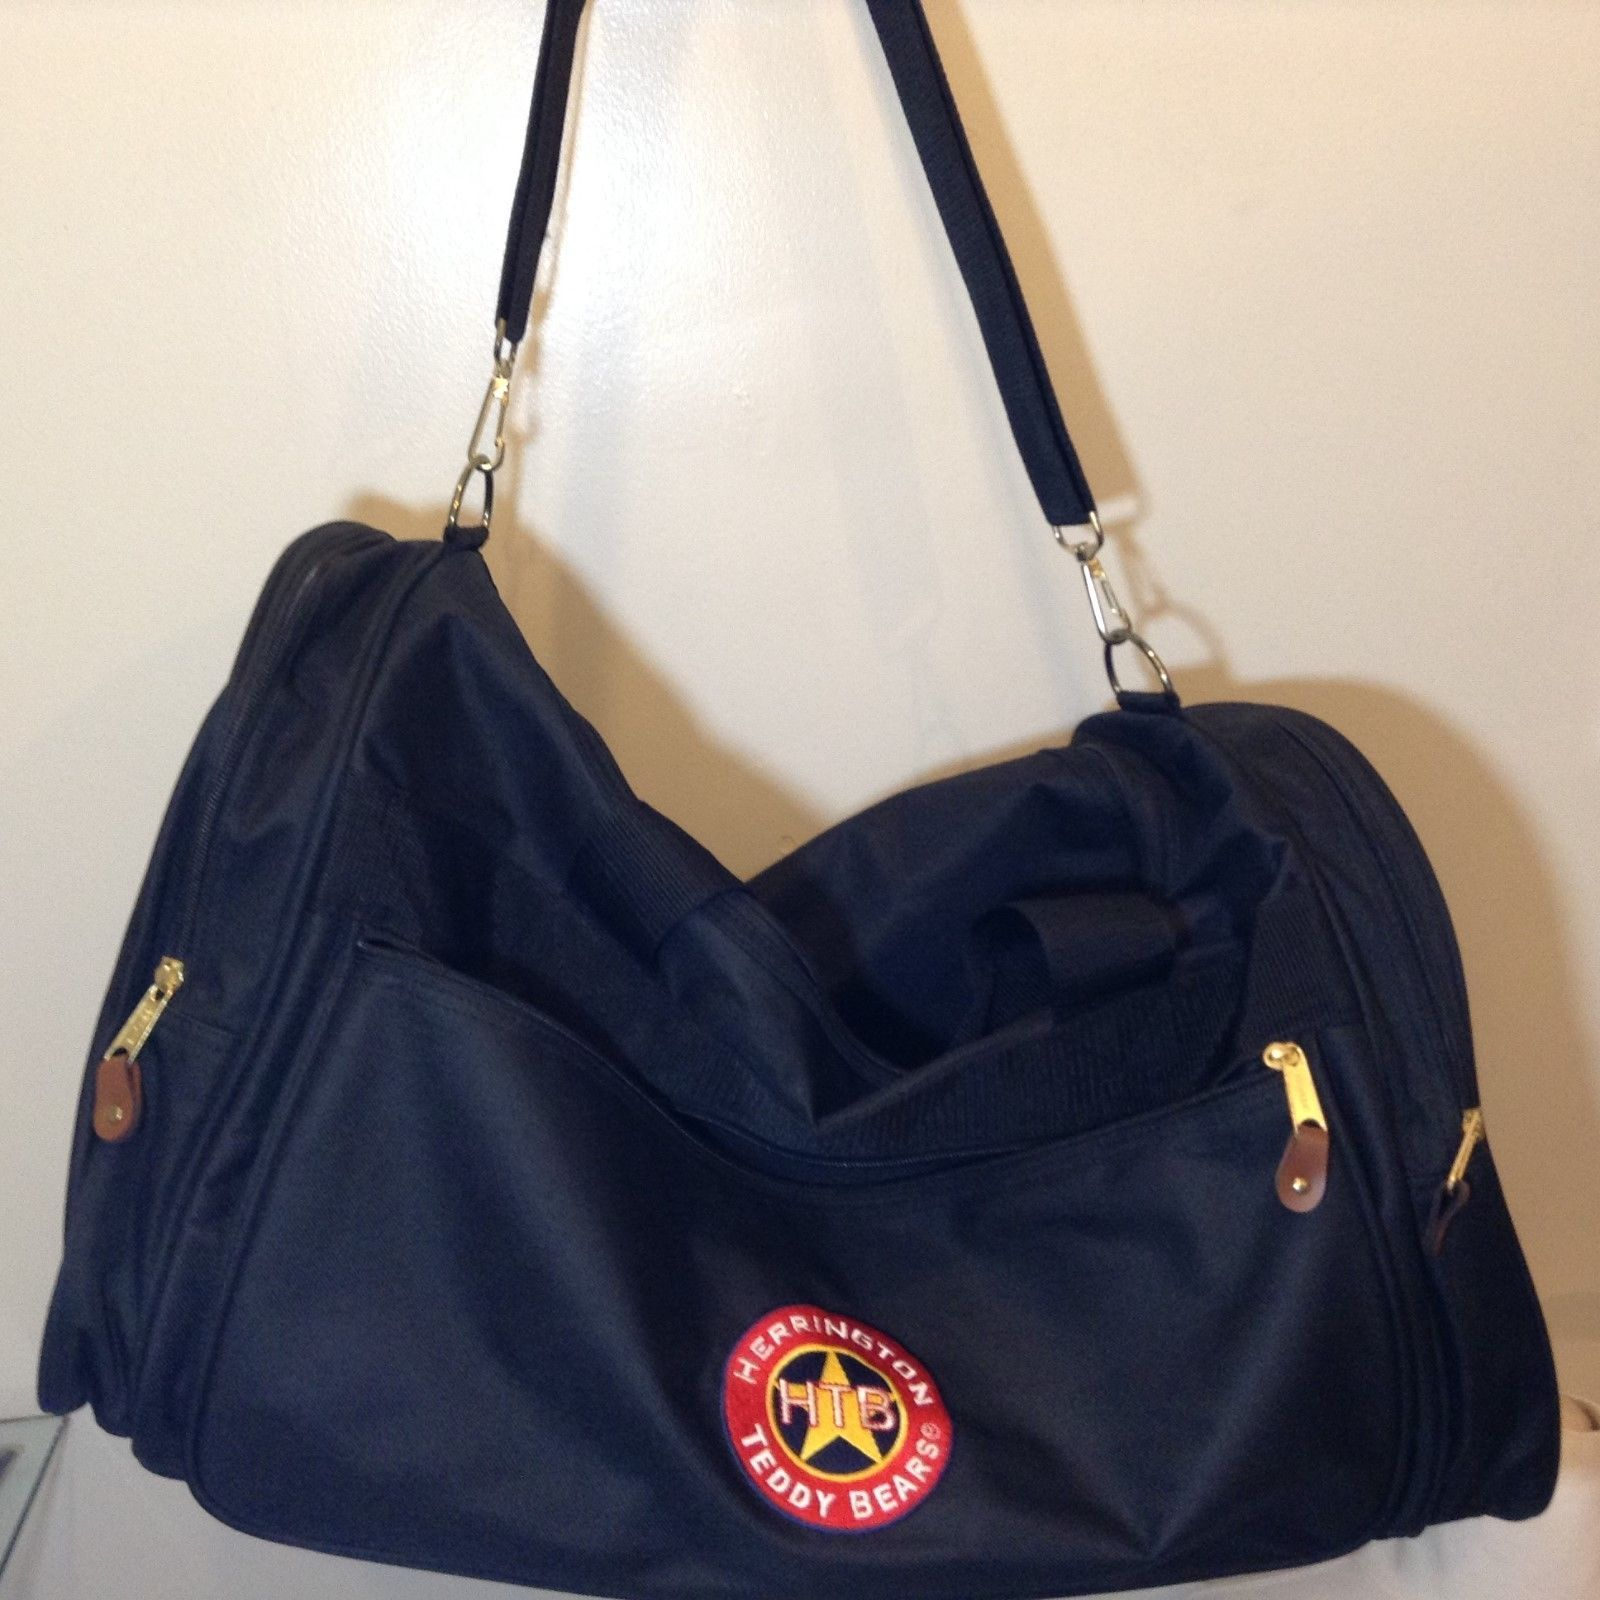 NEW Large Black Herrington Teddy Bear Duffel Bag